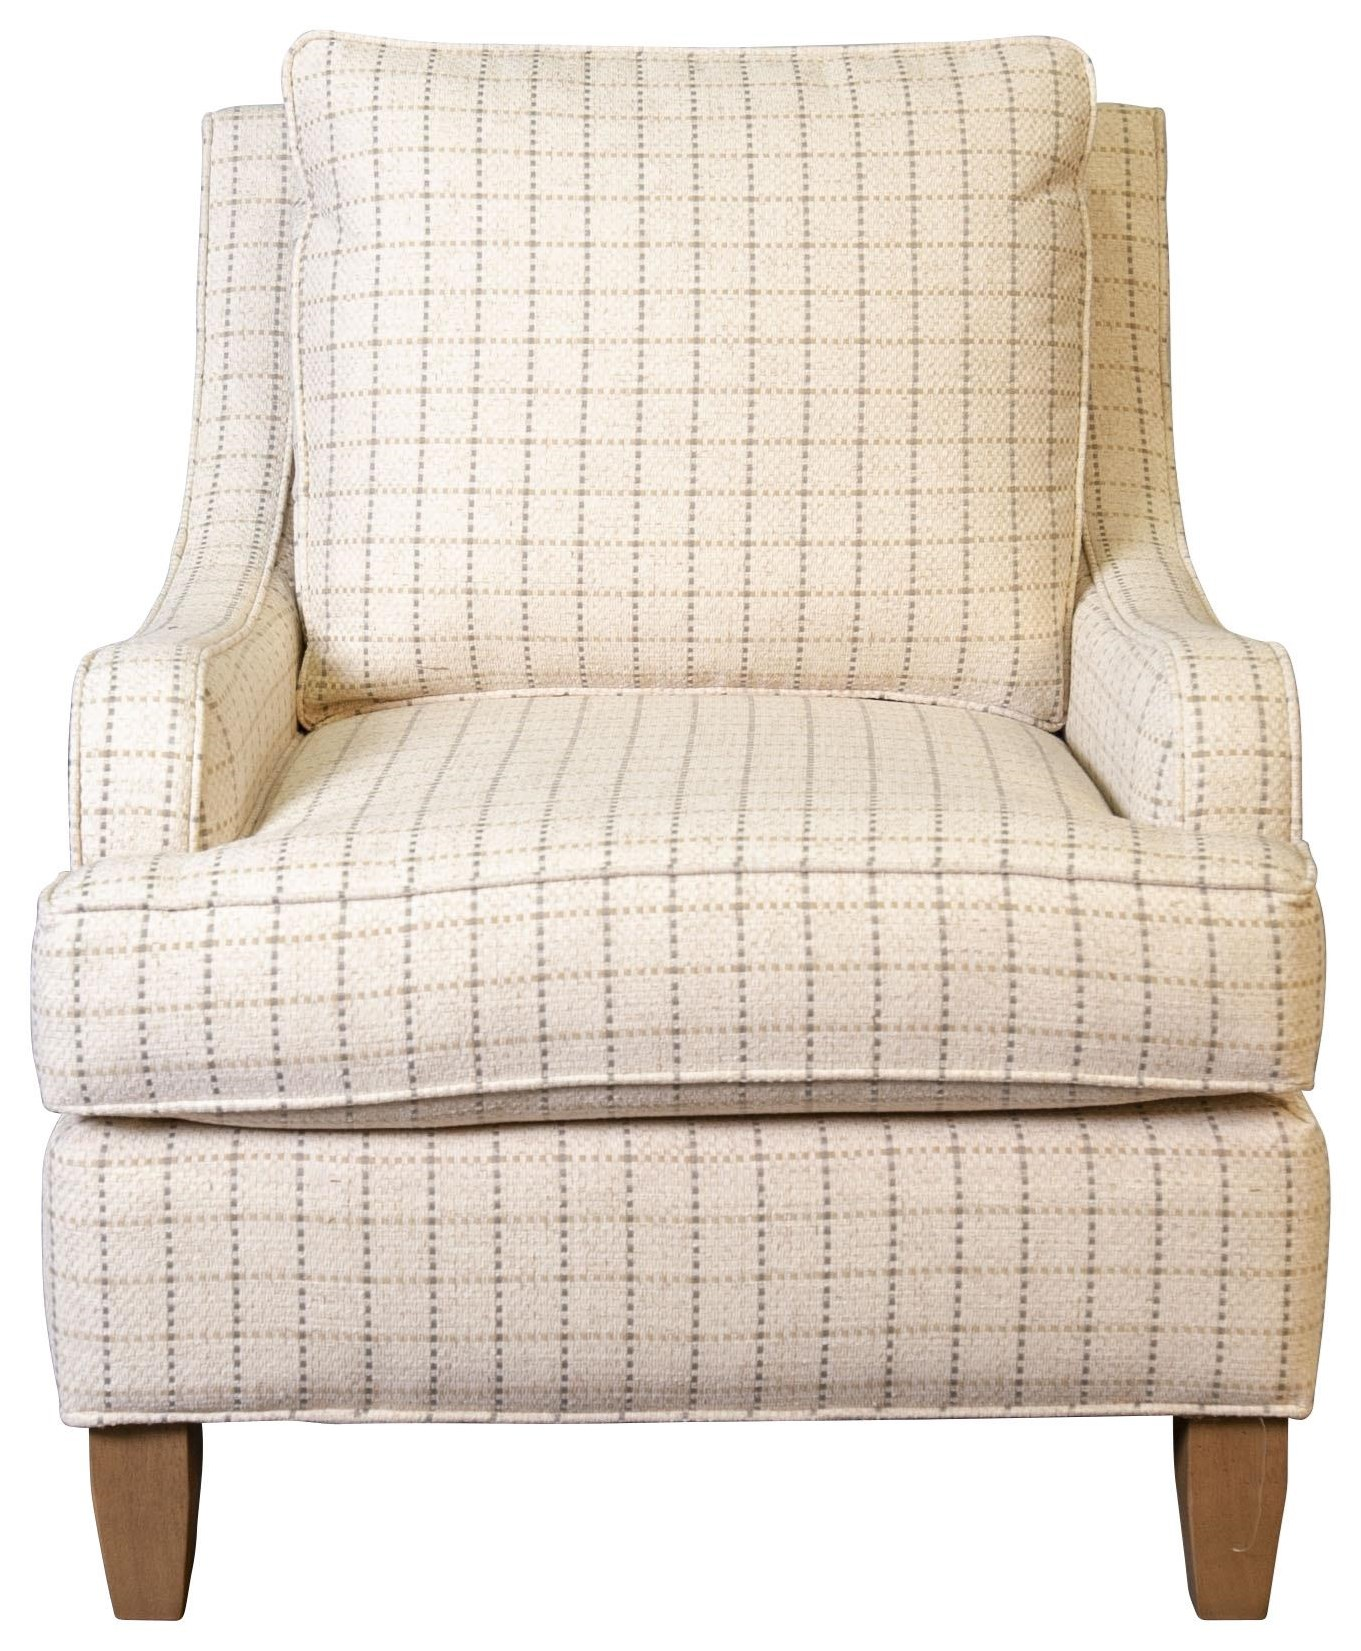 Julia Julia Accent Chair by Craftmaster at Morris Home